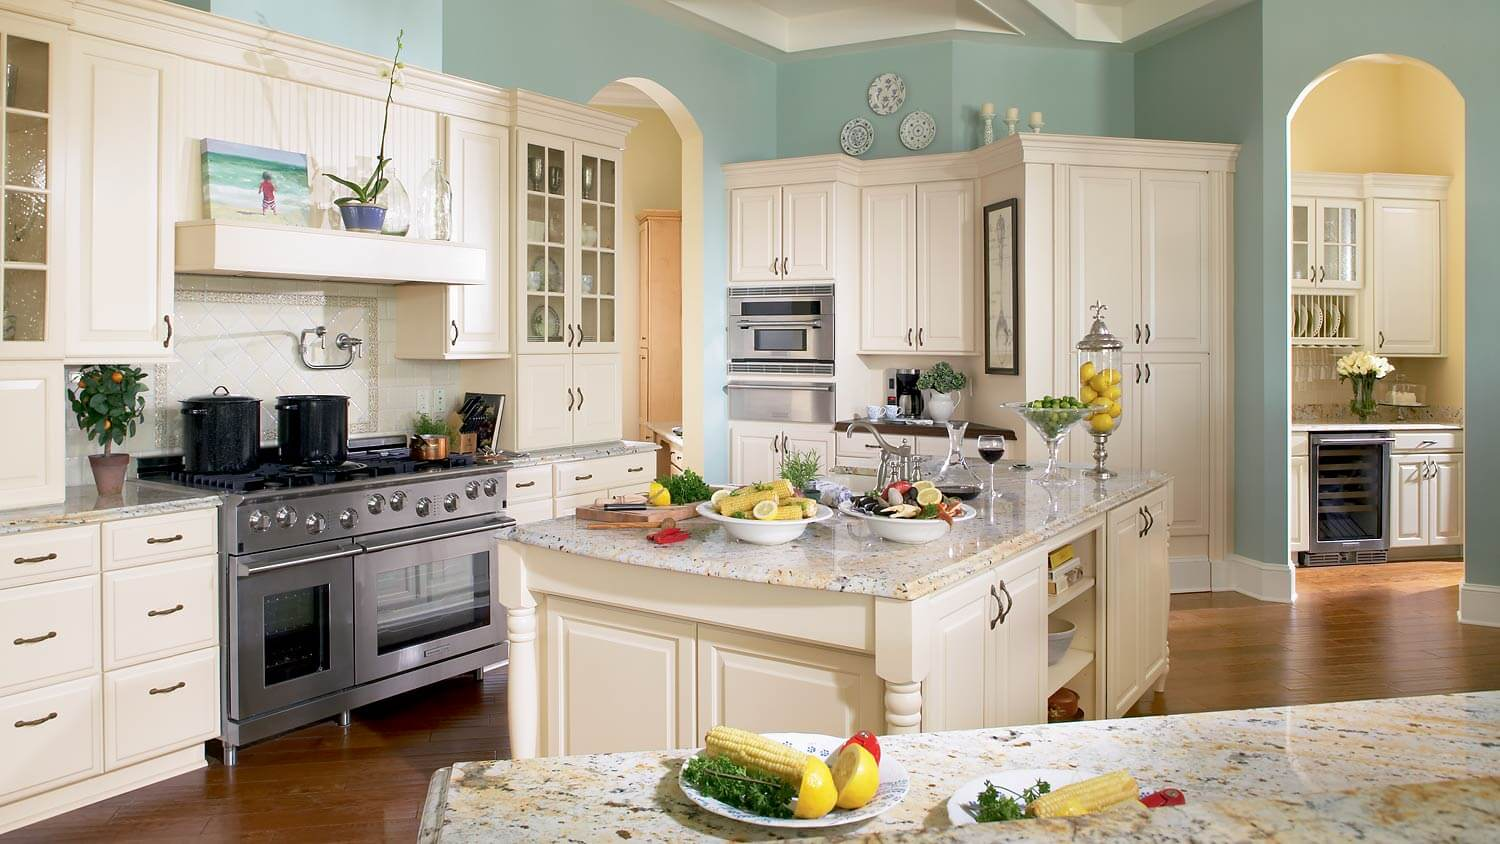 The ultimate cook s kitchen form function and aesthetics for Southern kitchen design